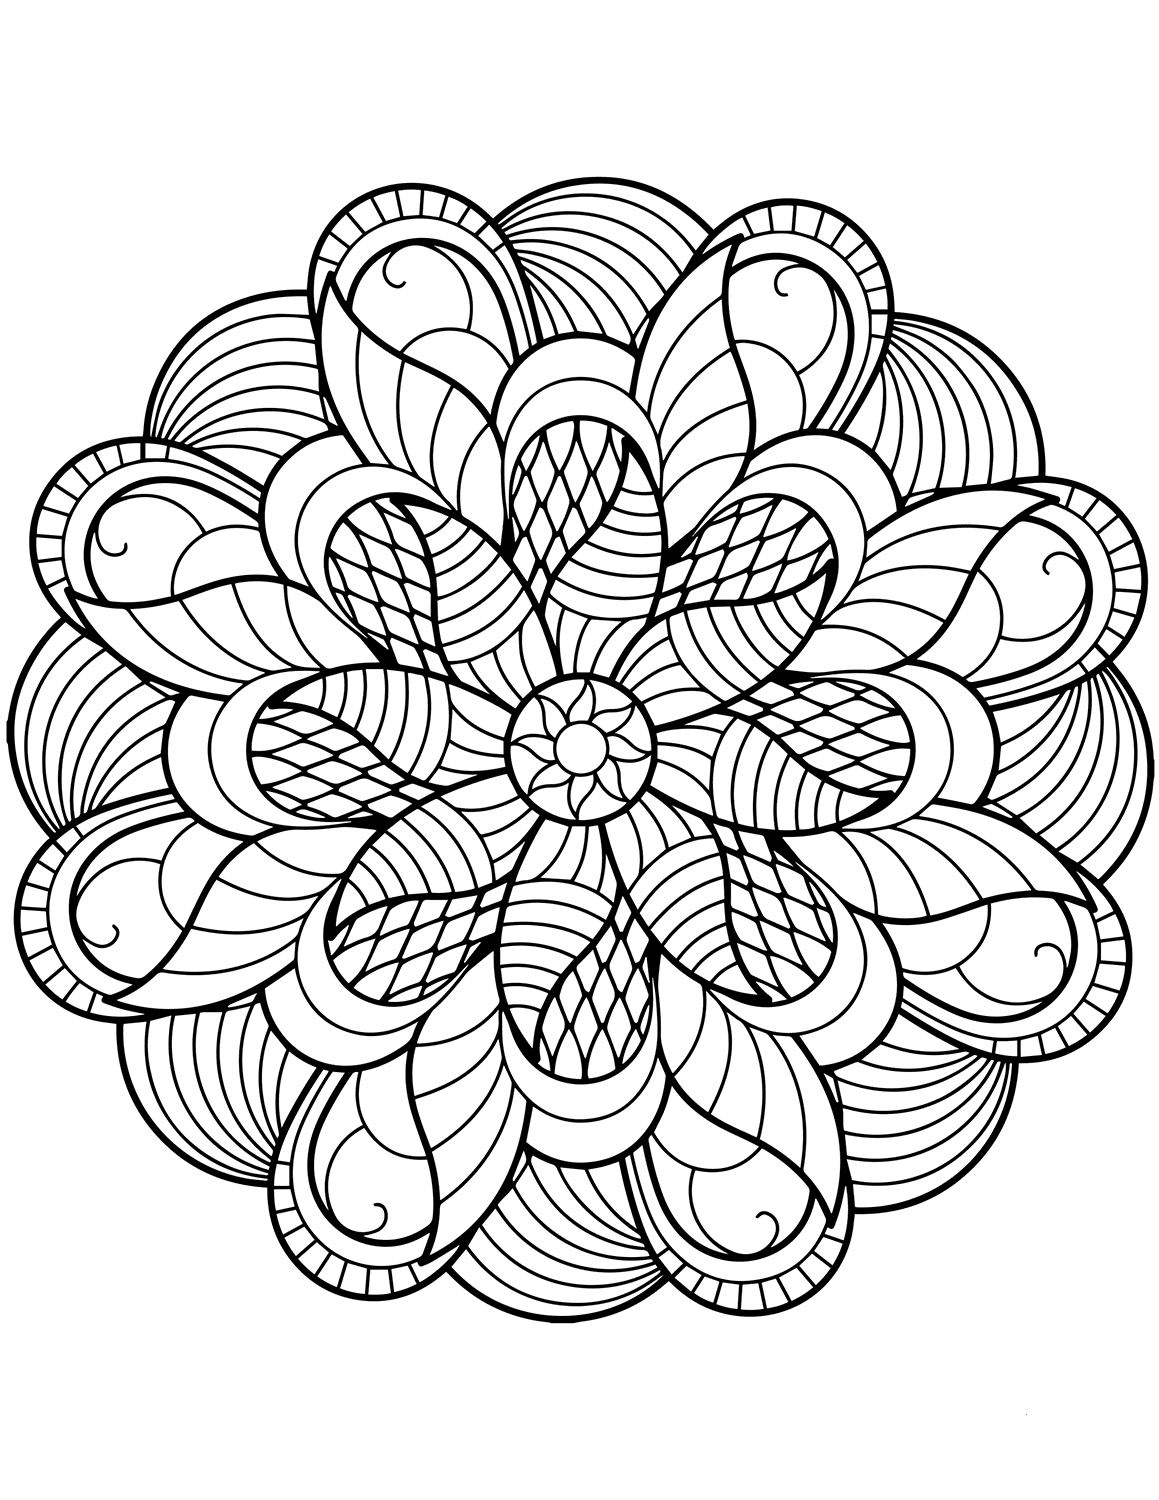 mandala colouring pages for kids free printable mandala coloring pages for adults best kids mandala for colouring pages